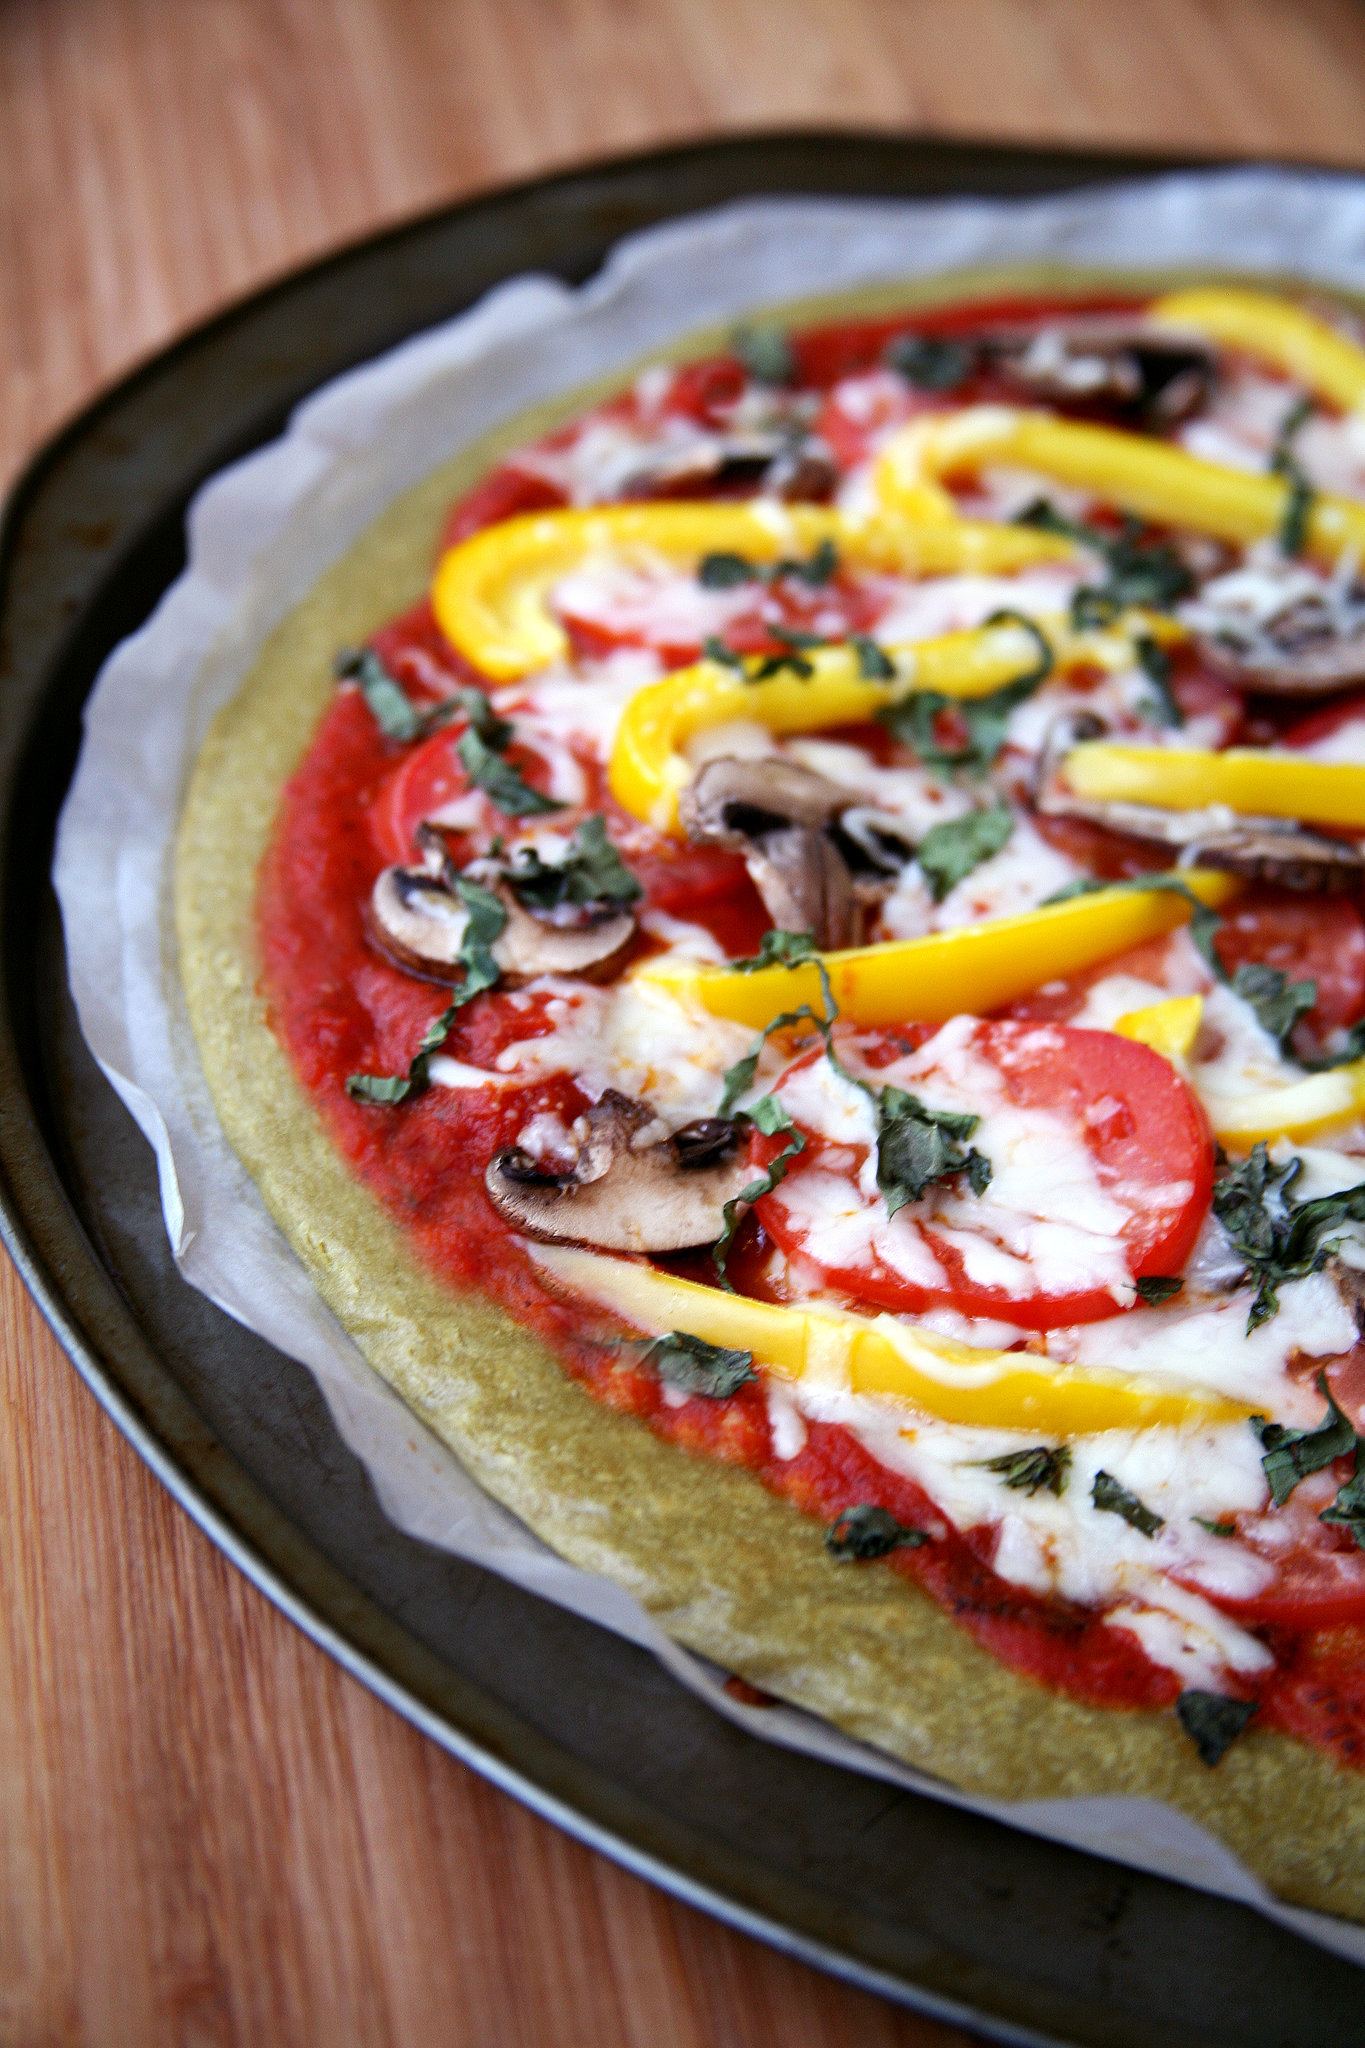 Saturday: Quinoa Basil Pizza